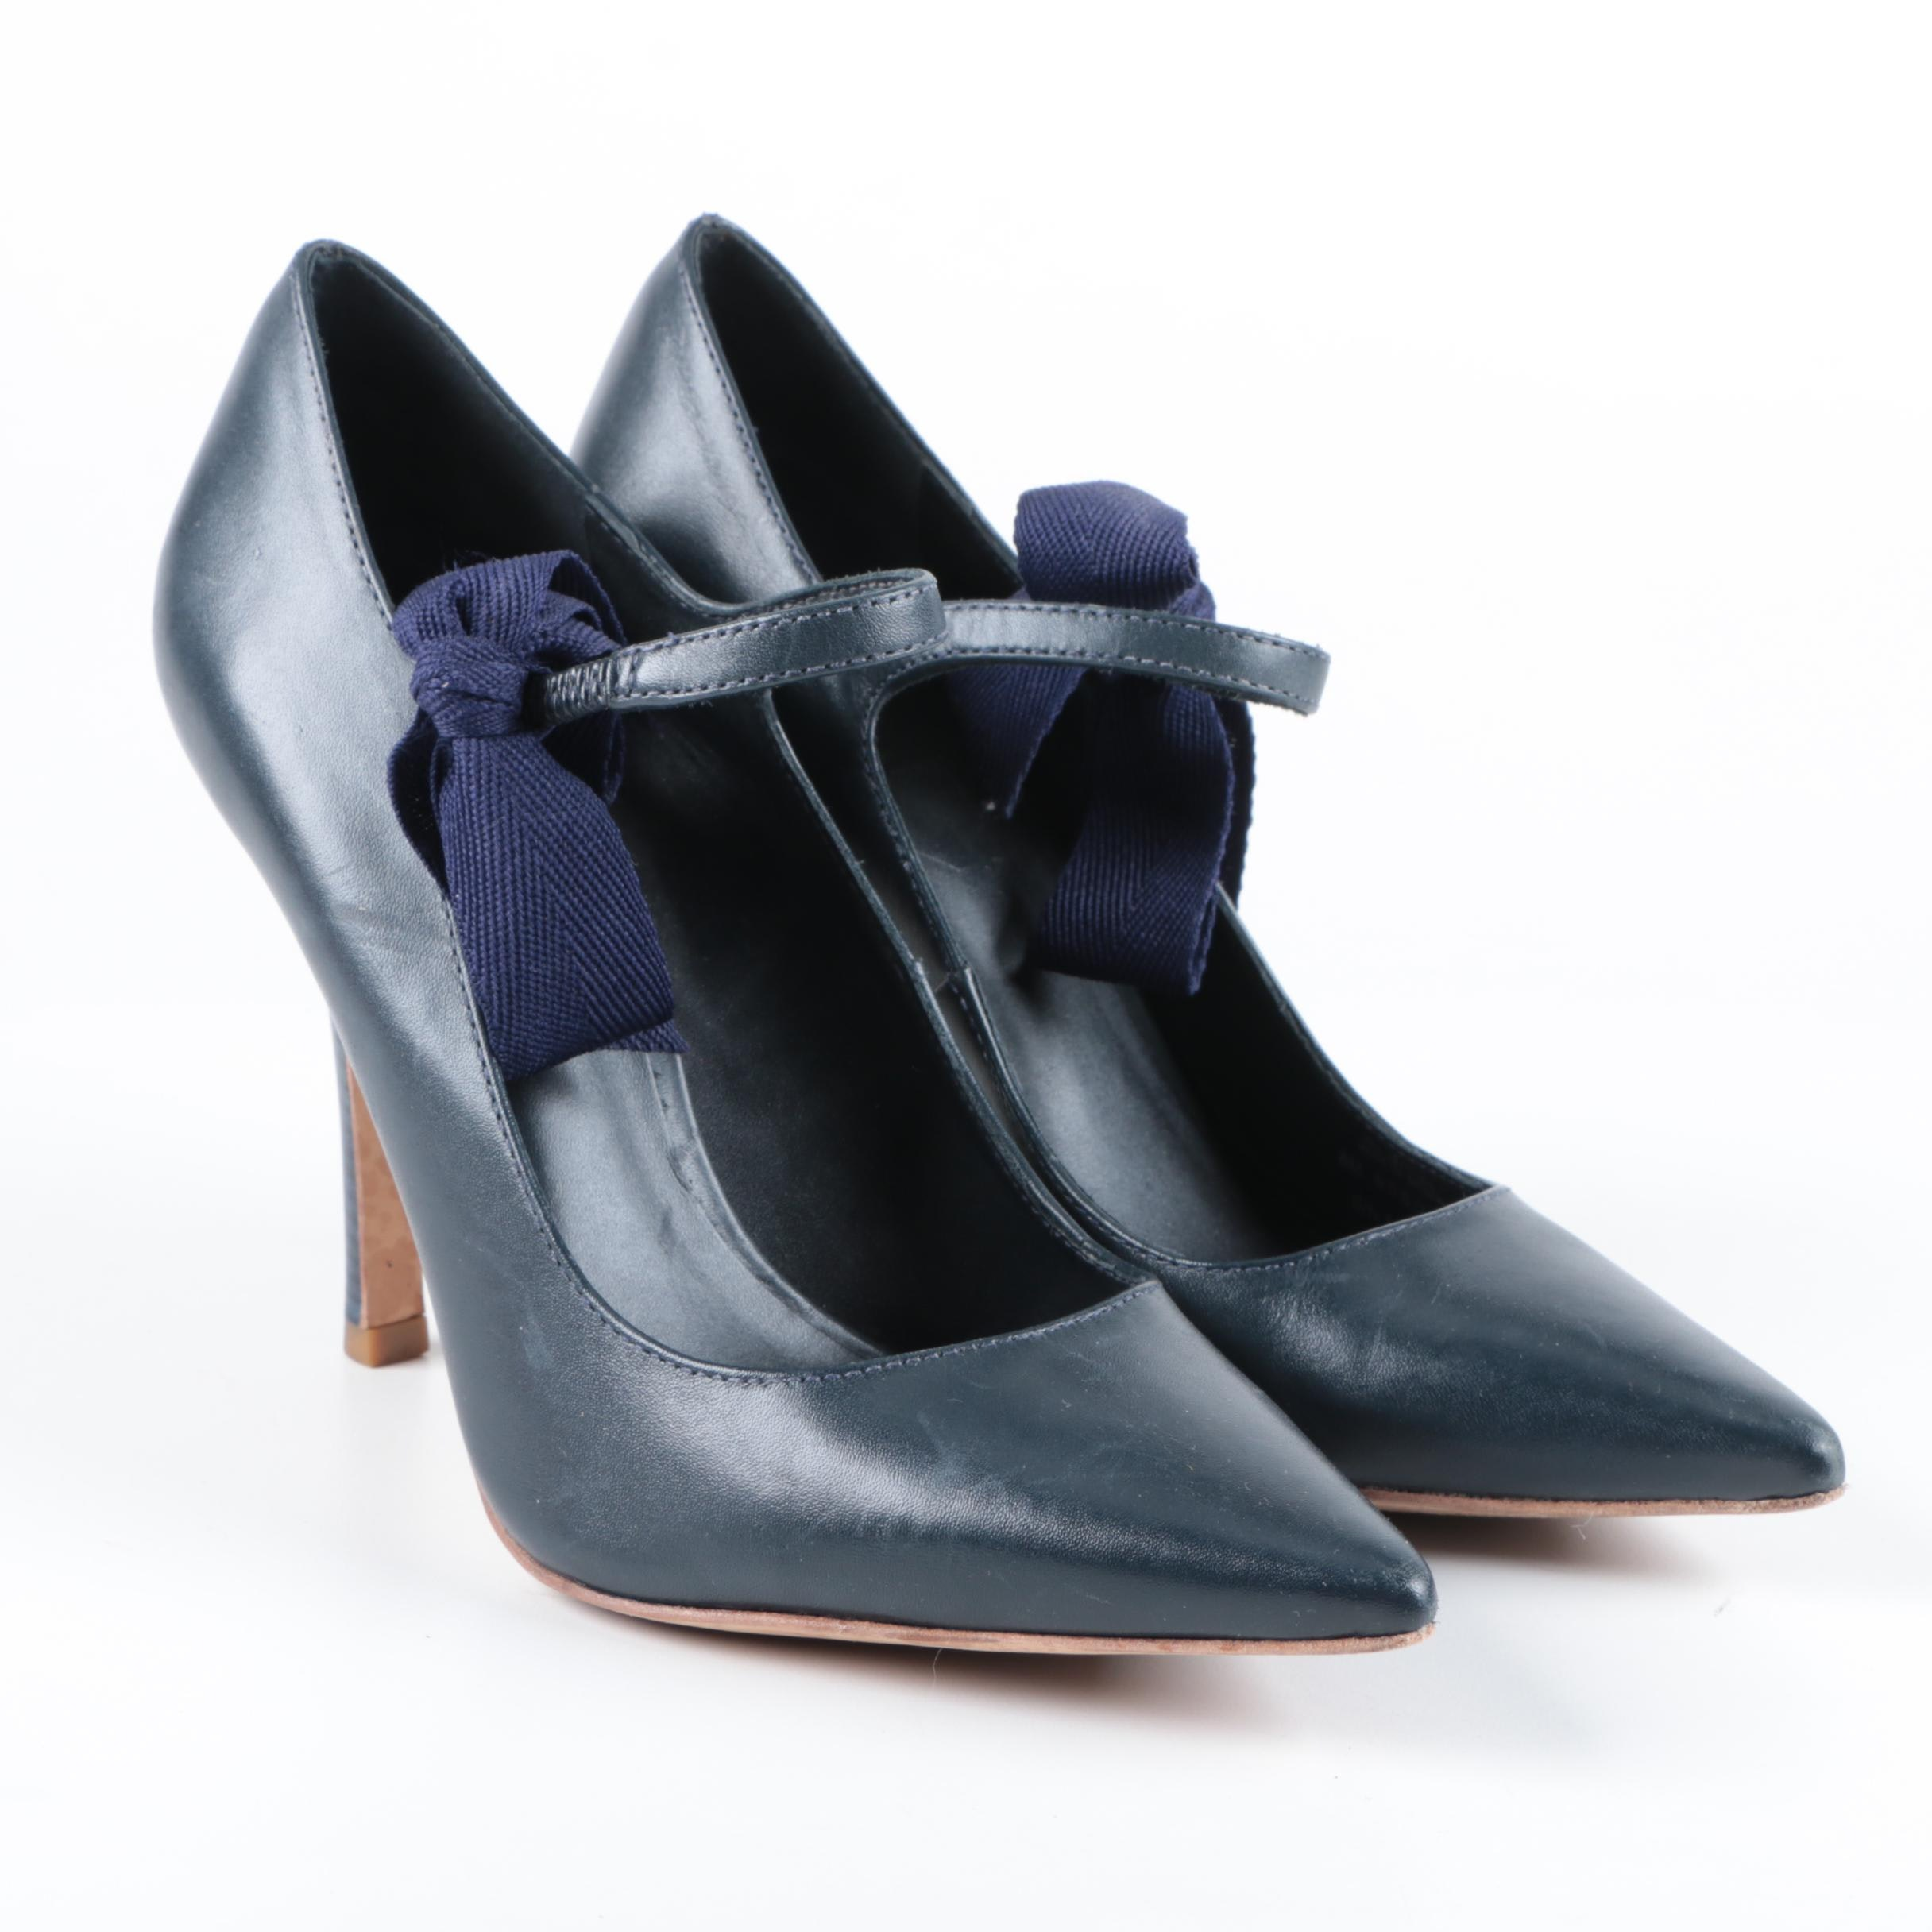 Tory Burch Navy Blue Leather High Heeled Shoes with Bows